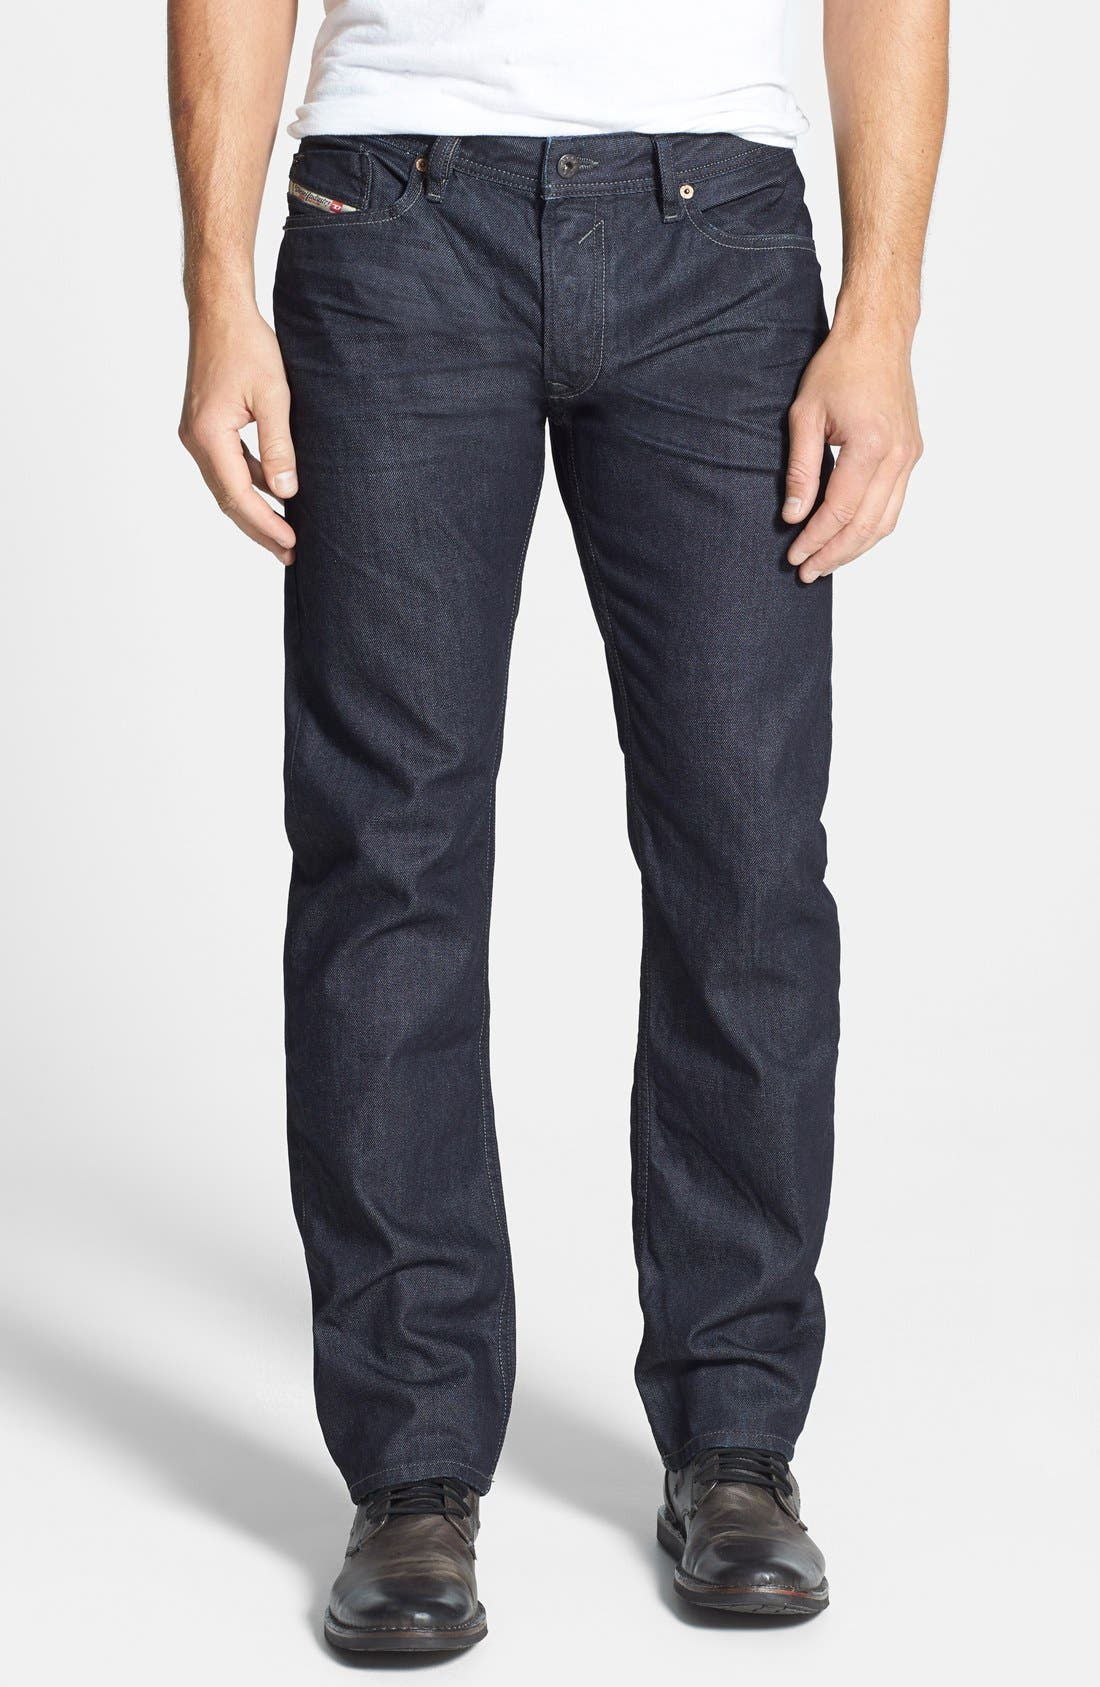 Waykee Straight Leg Jeans,                         Main,                         color, 0Z88